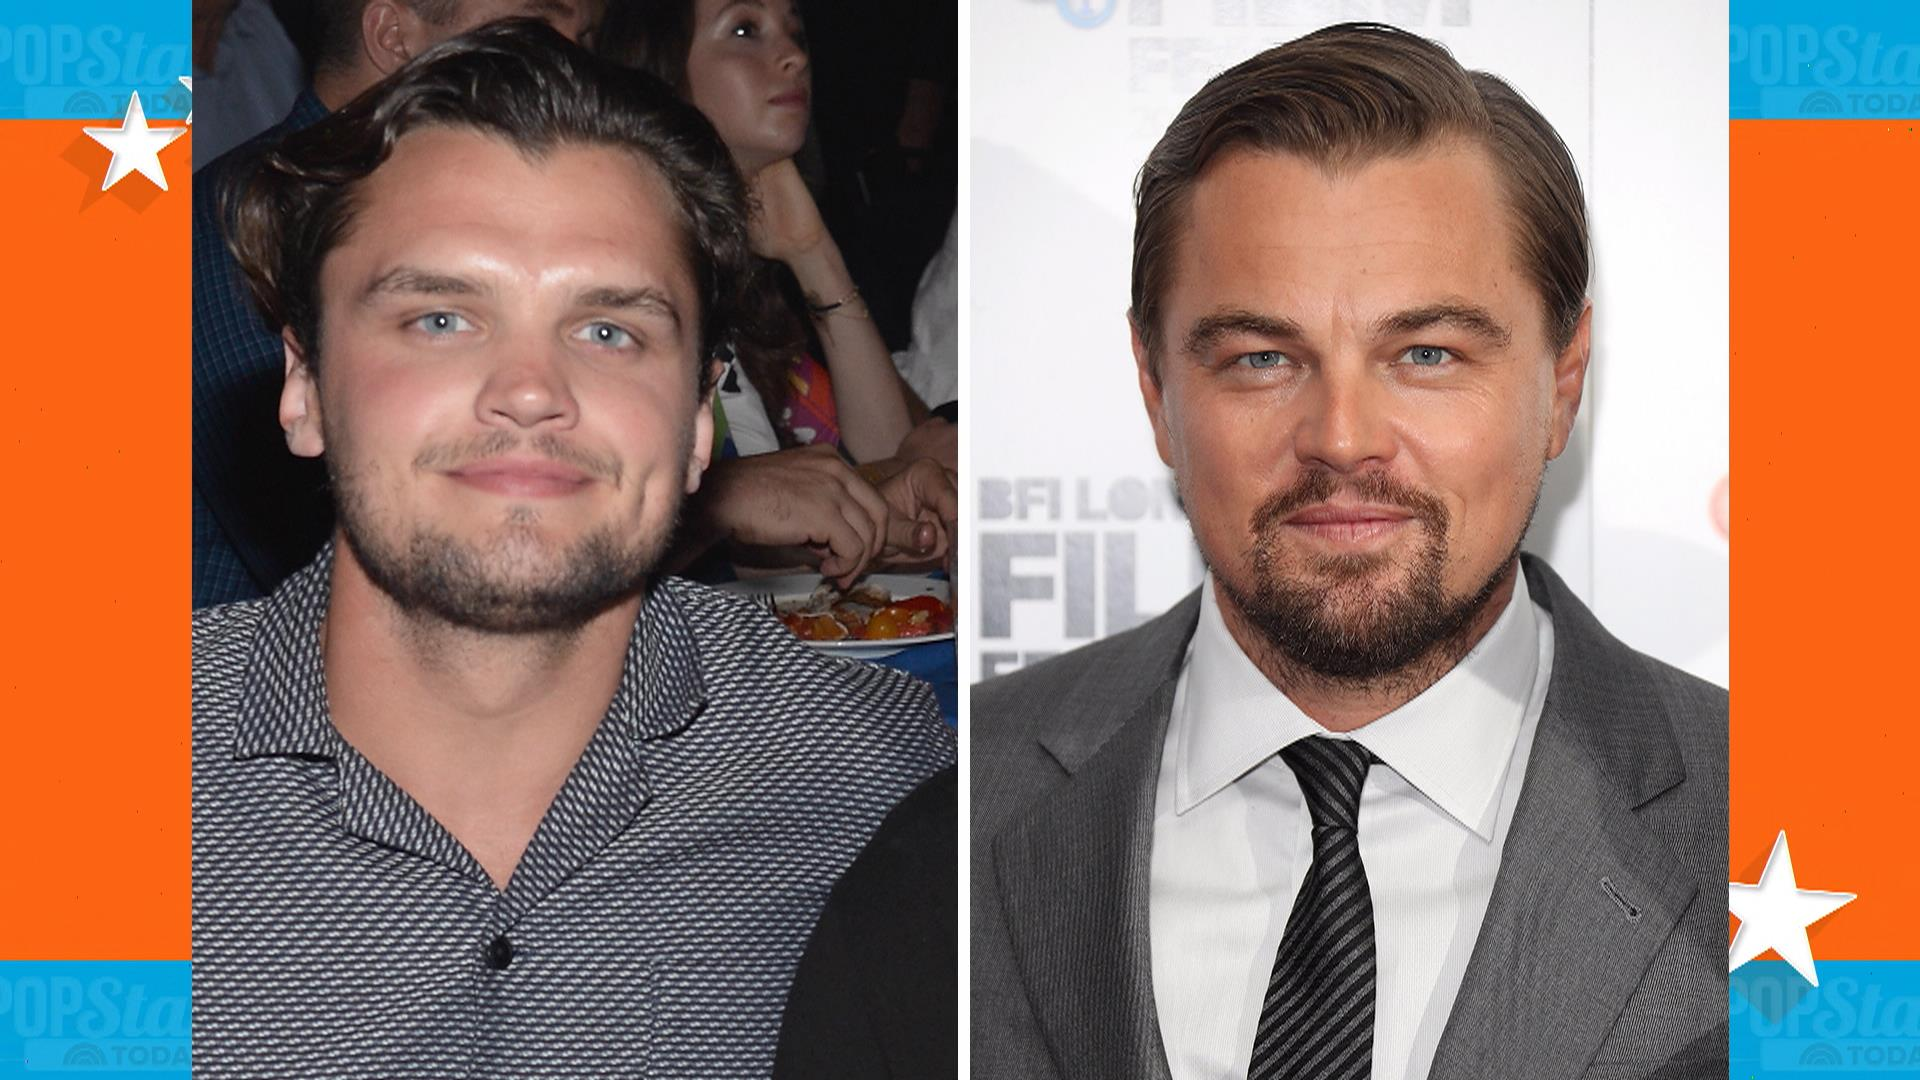 Leonardo Dicaprio S New Doppelganger Is Jack Nicholson S Son Ray Ray nicholson and jack nicholson attends apollo in the hamptons 2015 at the creeks on august 15. jack nicholson s son ray